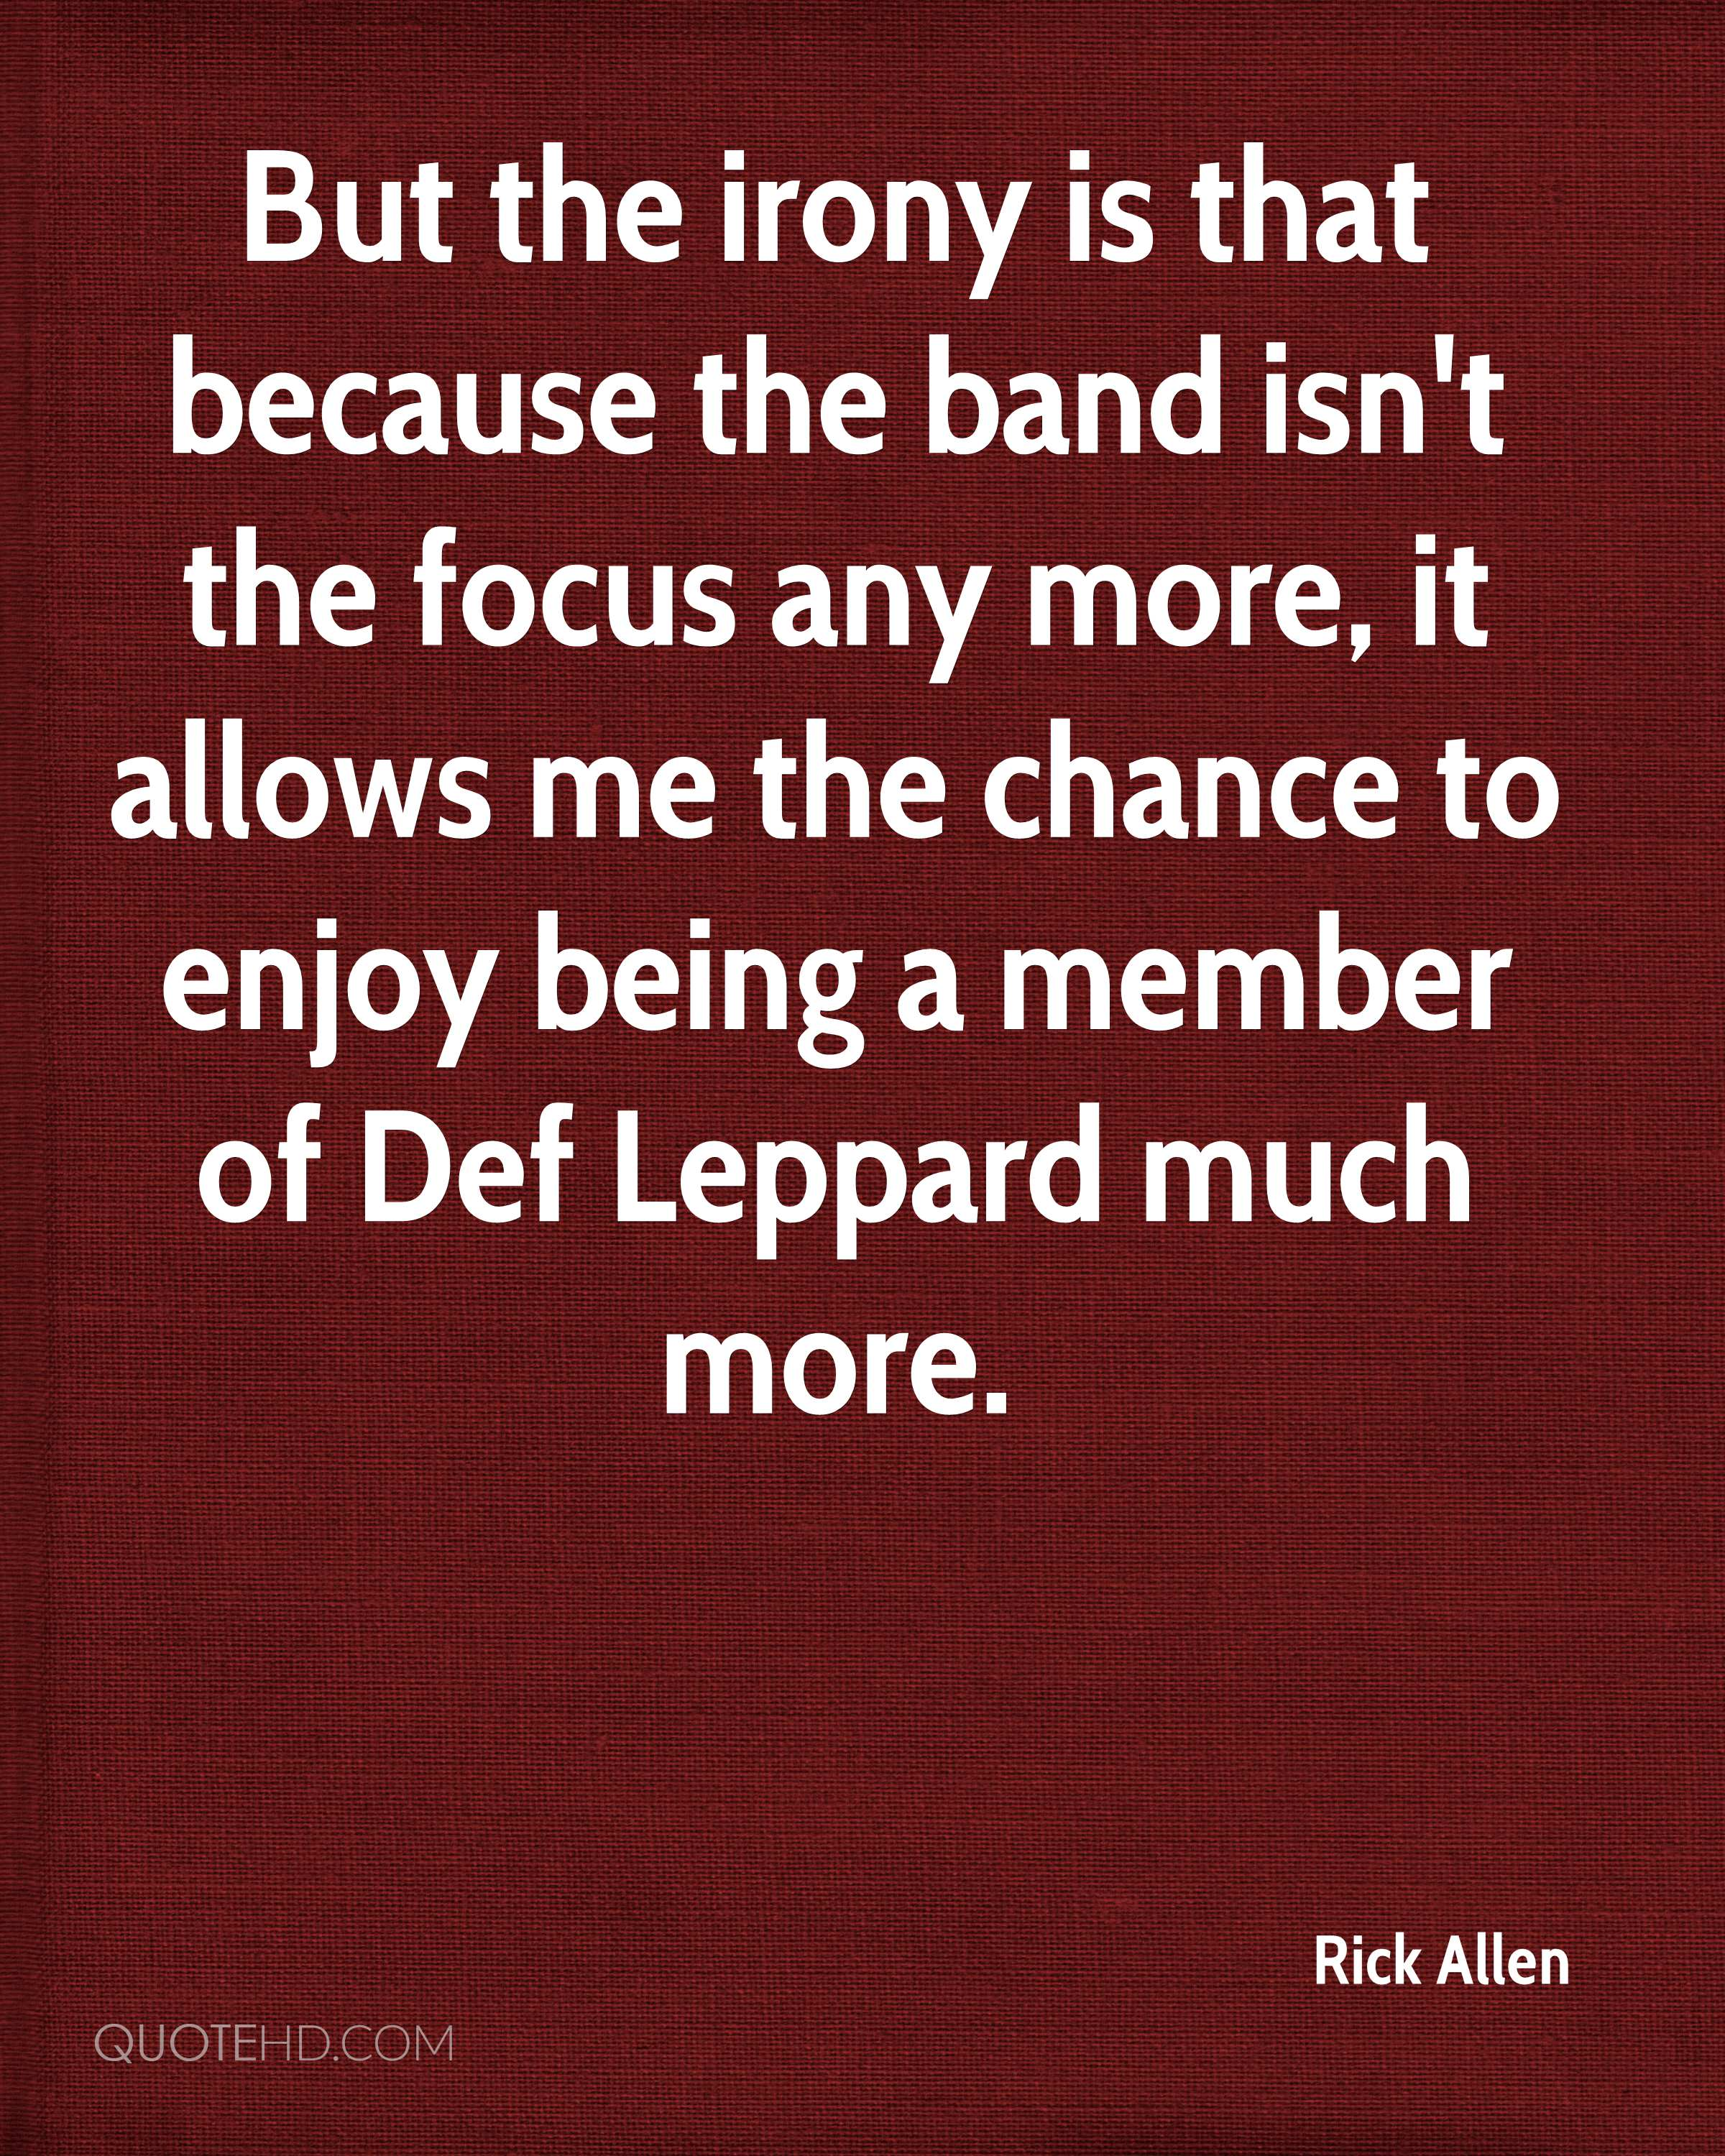 But the irony is that because the band isn't the focus any more, it allows me the chance to enjoy being a member of Def Leppard much more.